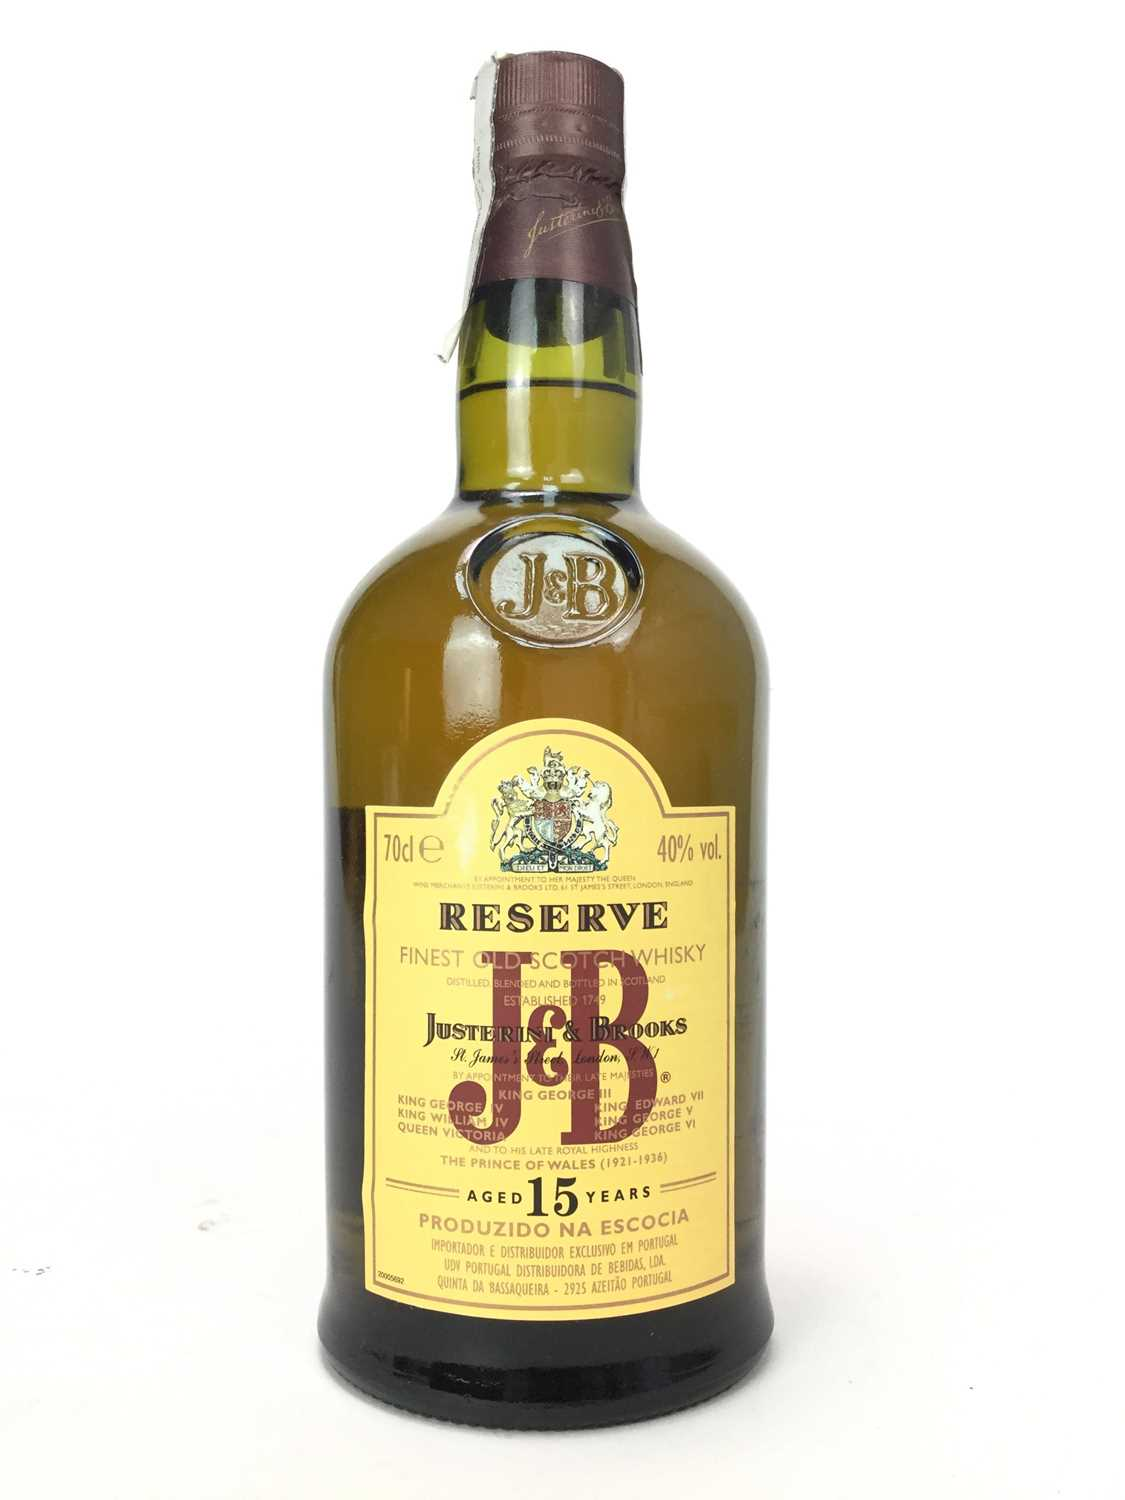 Lot 426 - J&B RESERVE AGED 15 YEARS